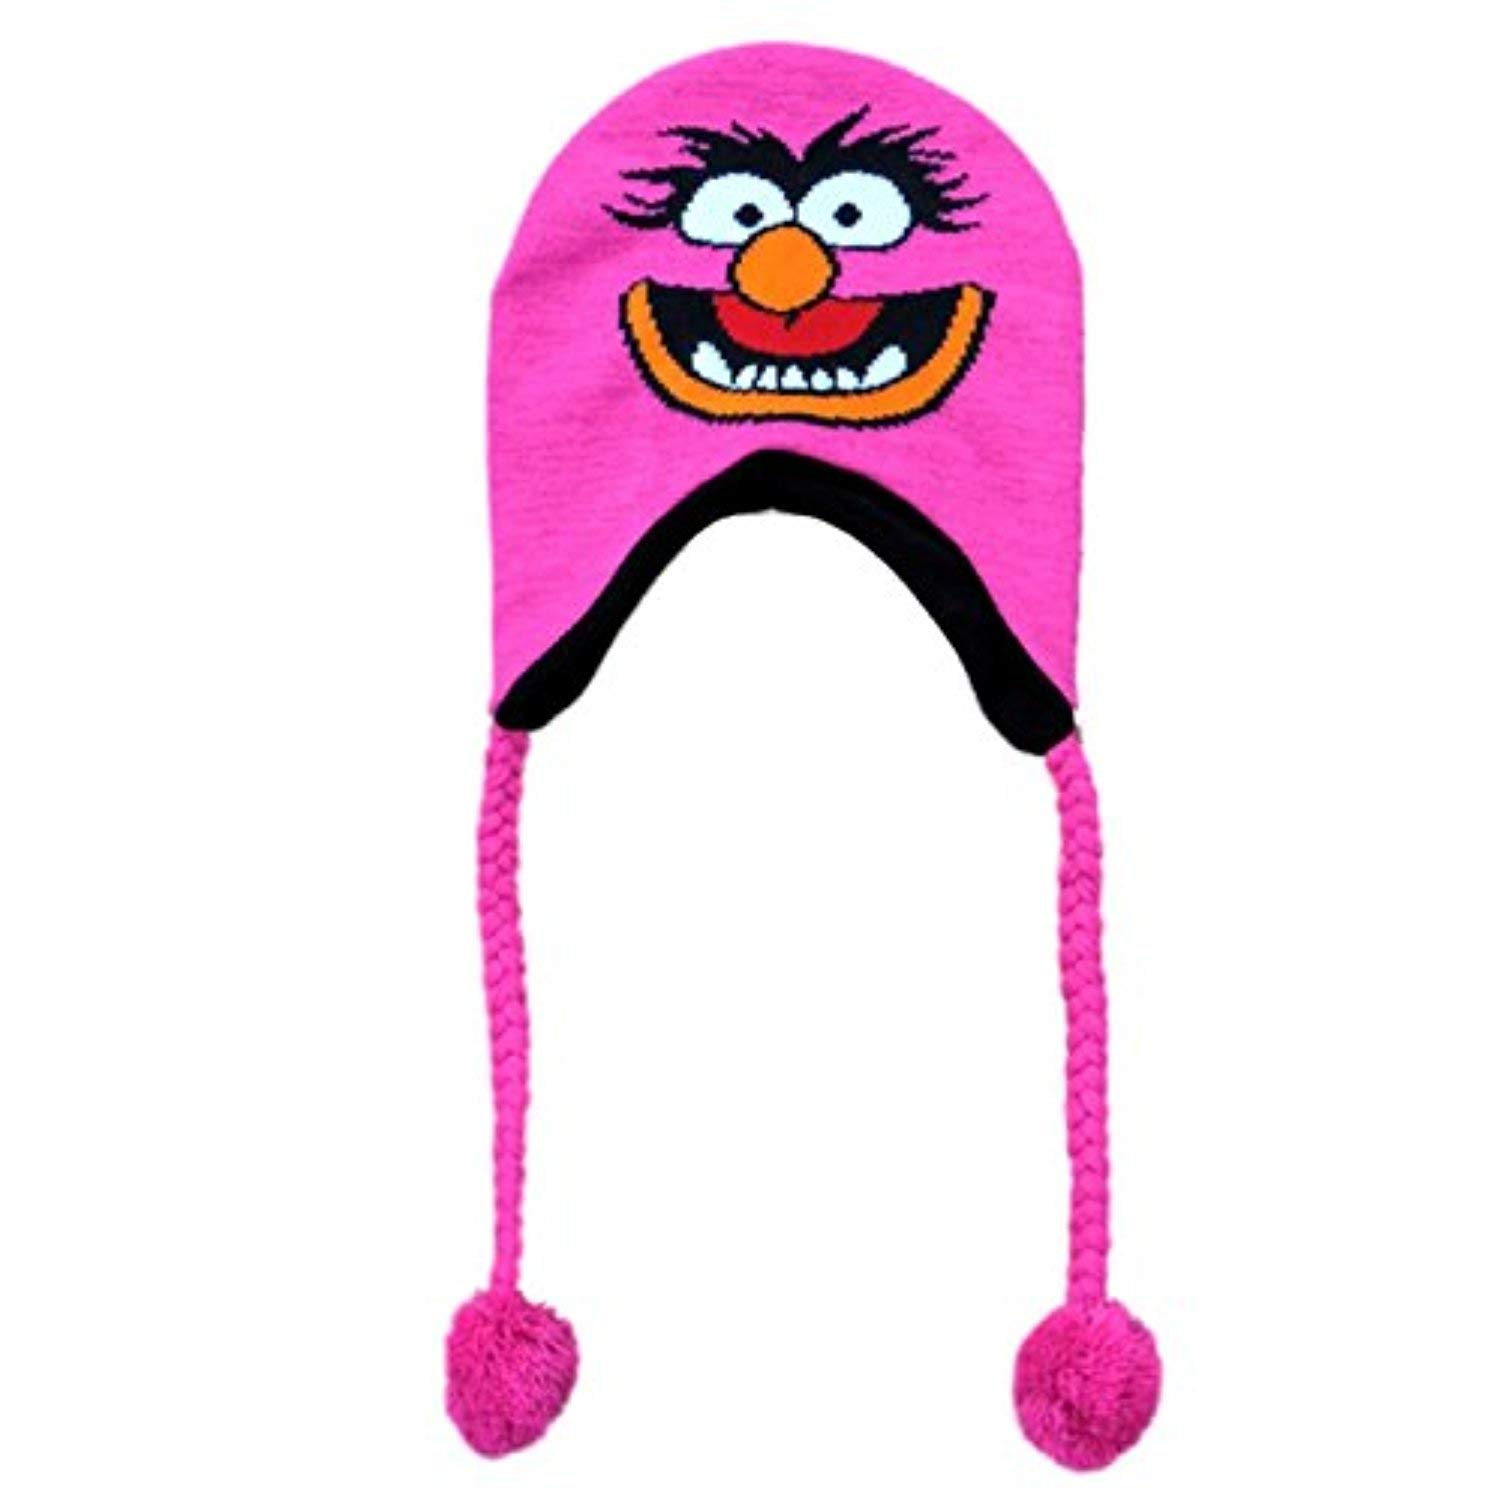 c7341762c82a5c Get Quotations · The Muppet's Womens Pink Knit Animal Peruvian Style Trapper  Hat Fleece Lined